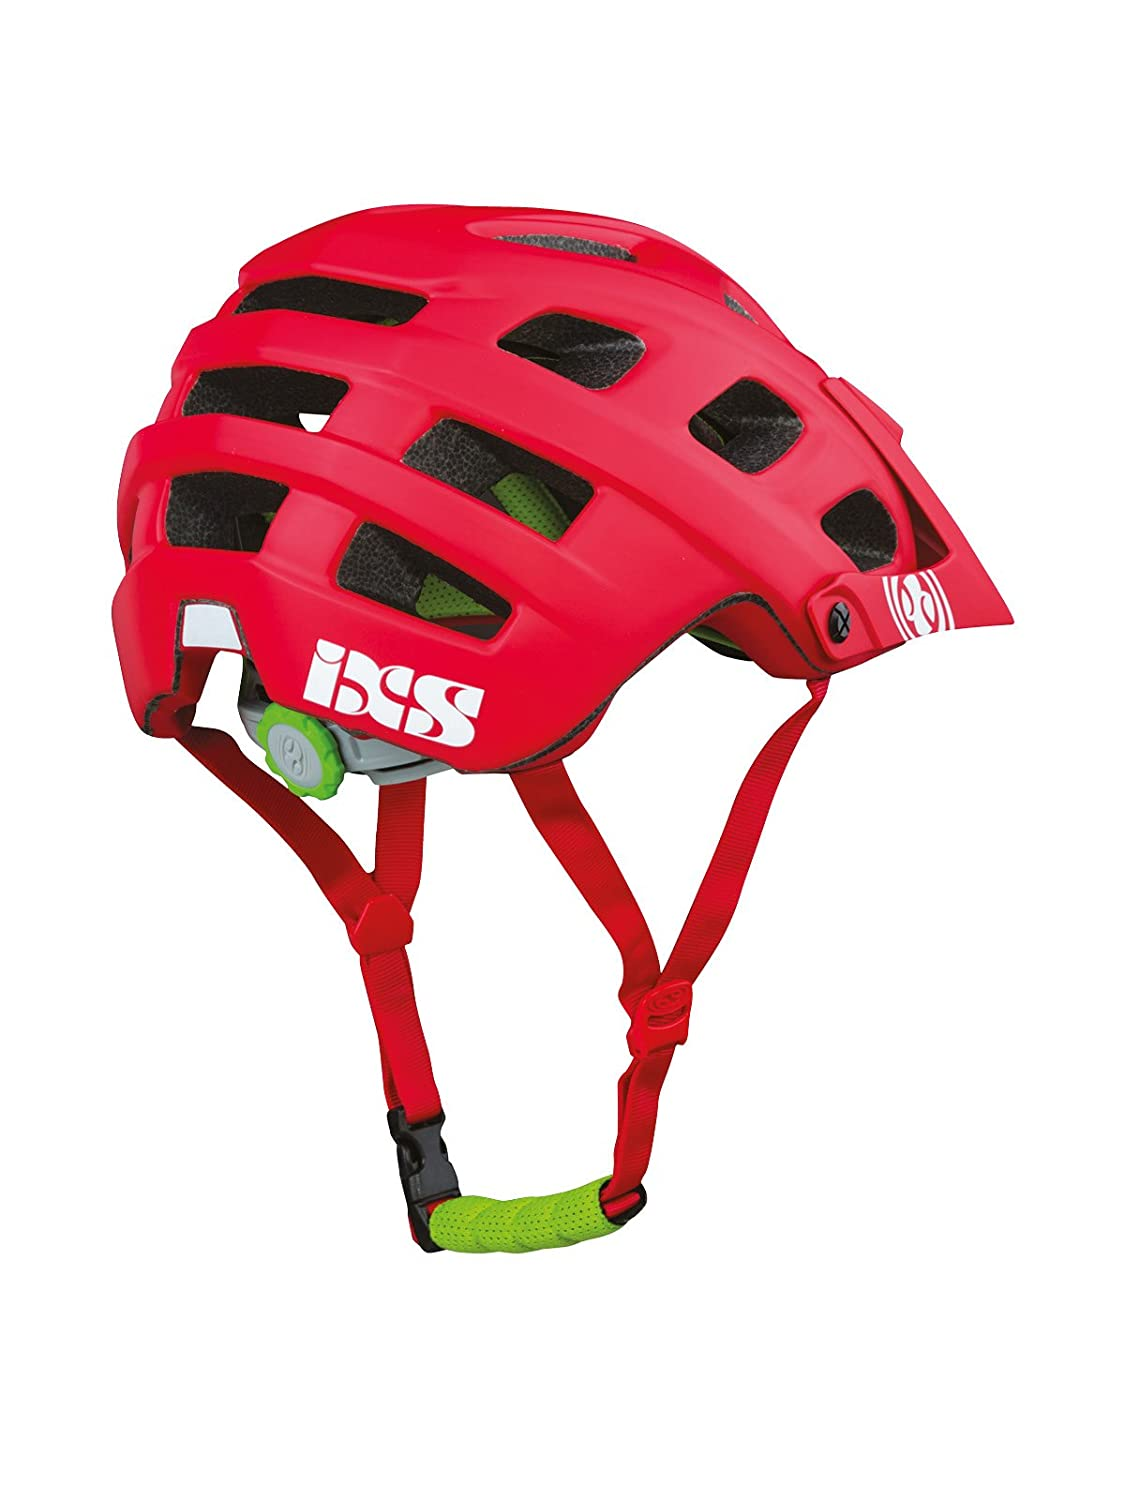 d99cf6b2bba Amazon.com : IXS Trail RS All Mountain Bicycle Helmet Red Medium / Large  M/L : Sports & Outdoors